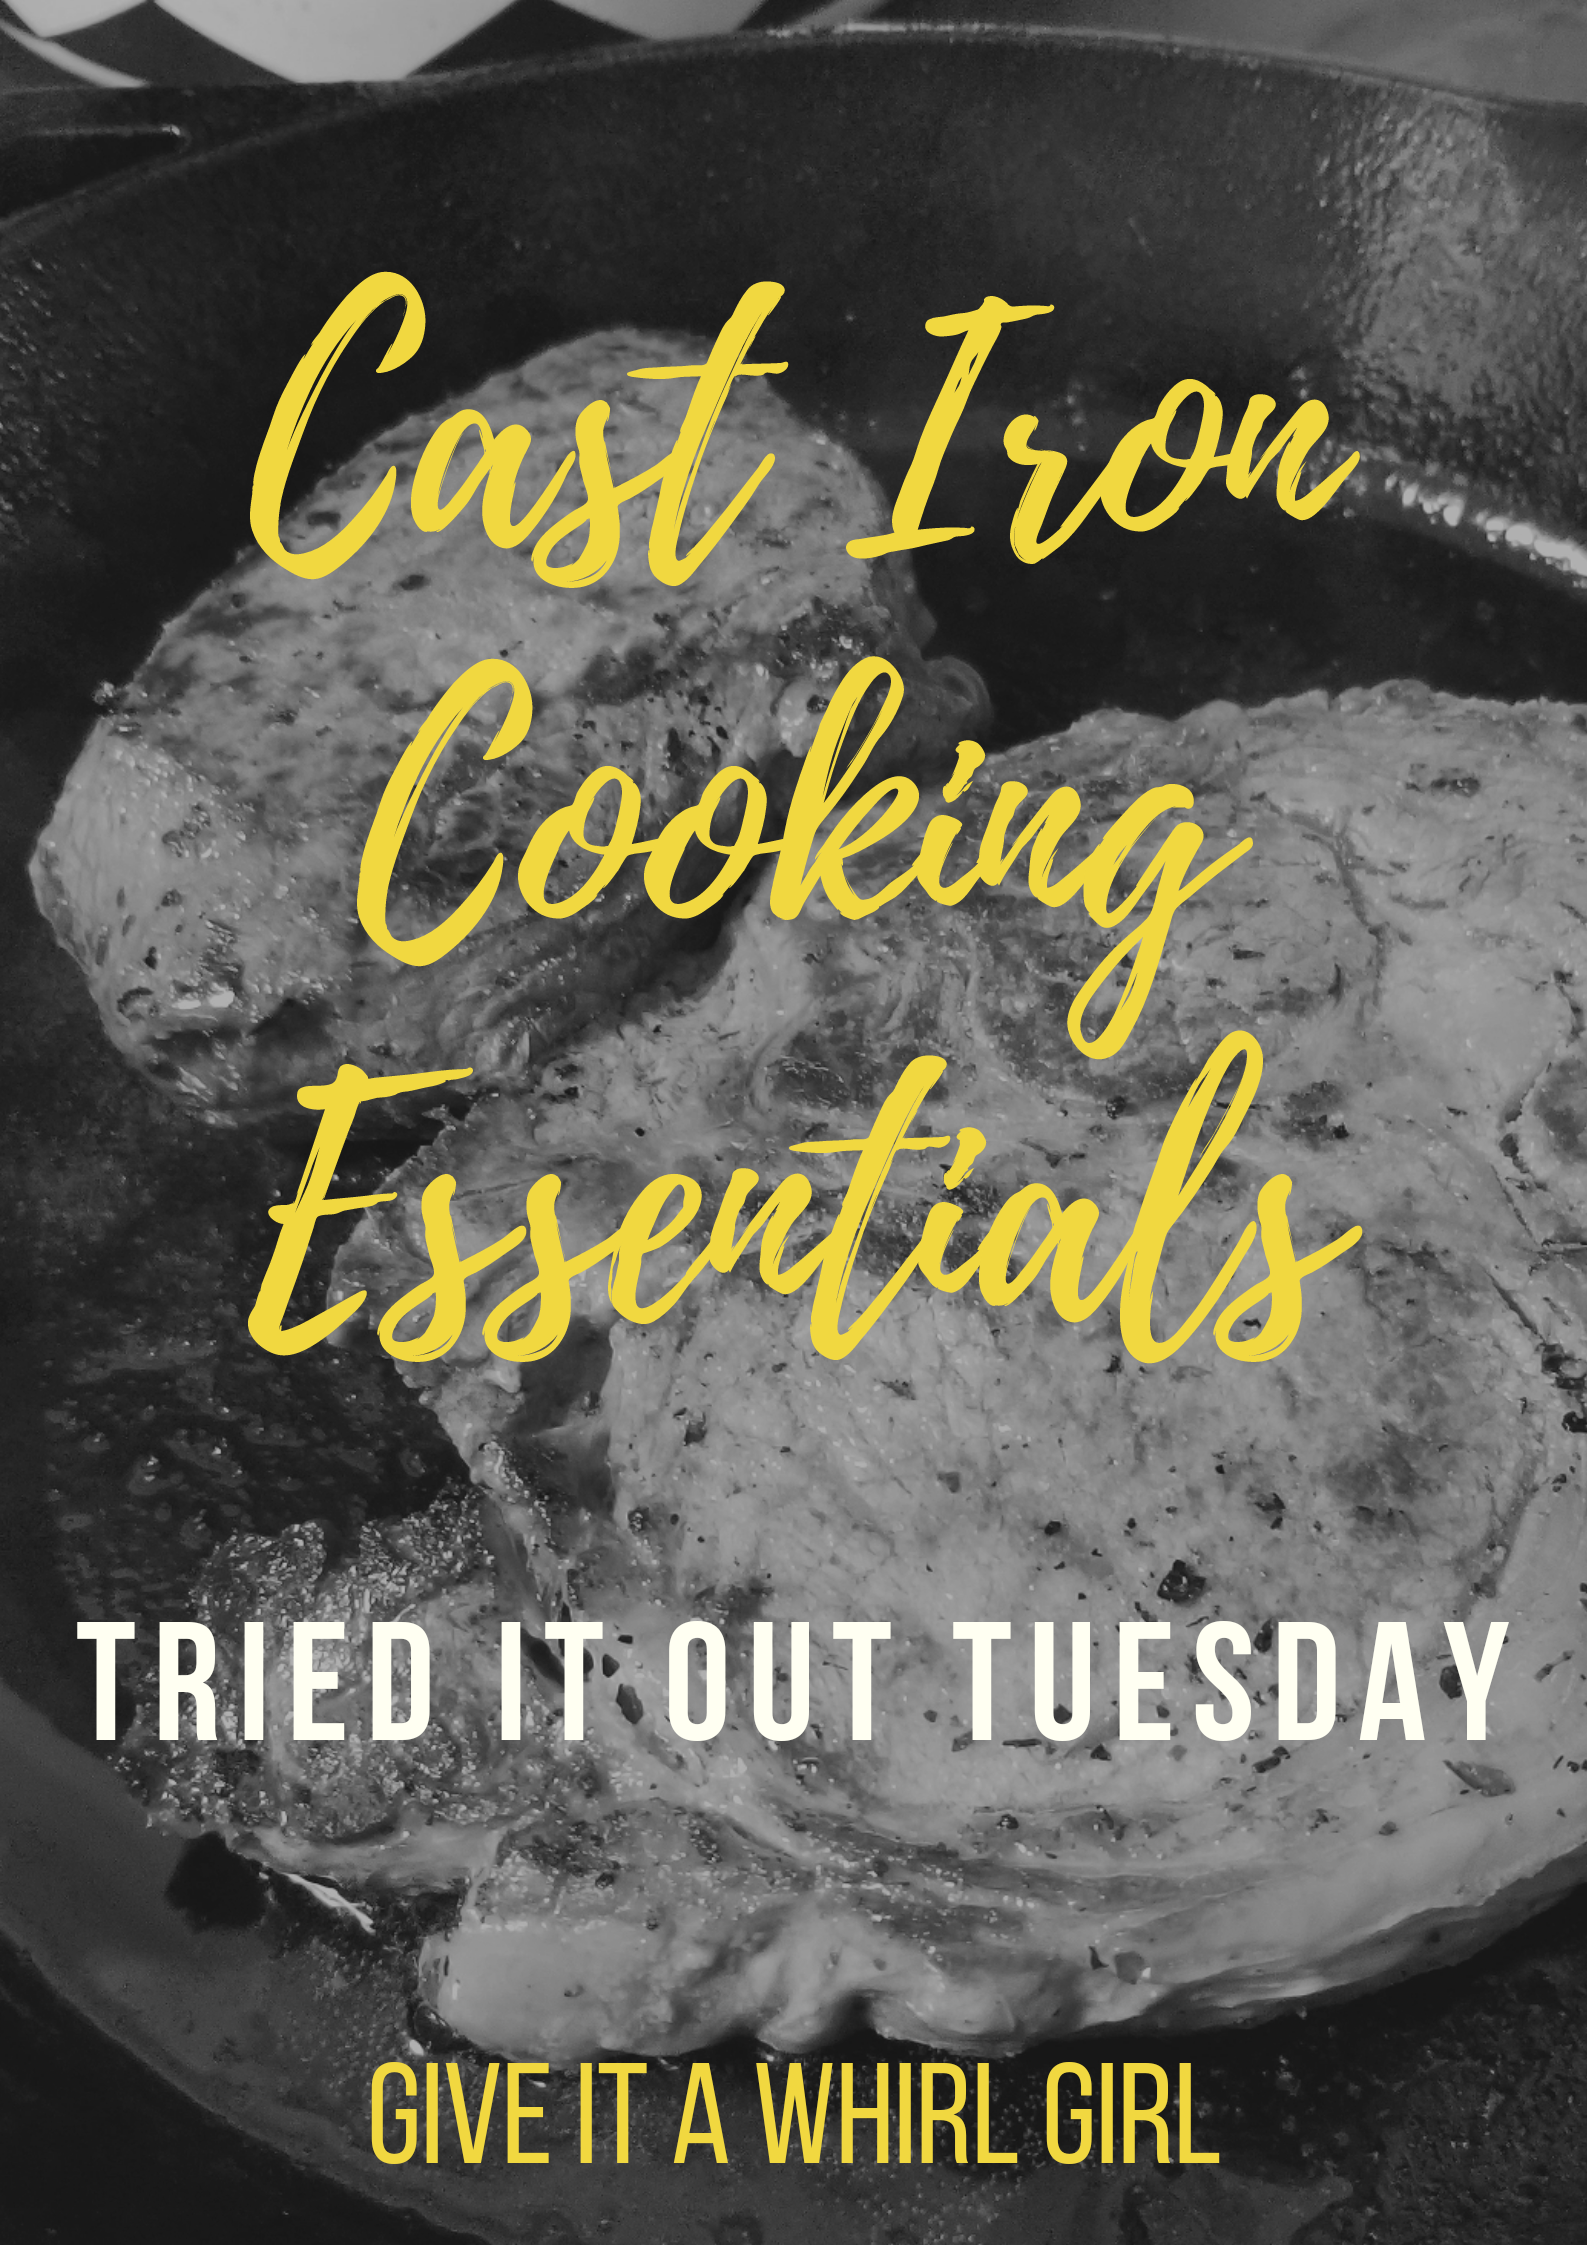 Cast Iron Cooking Essentials Top 10